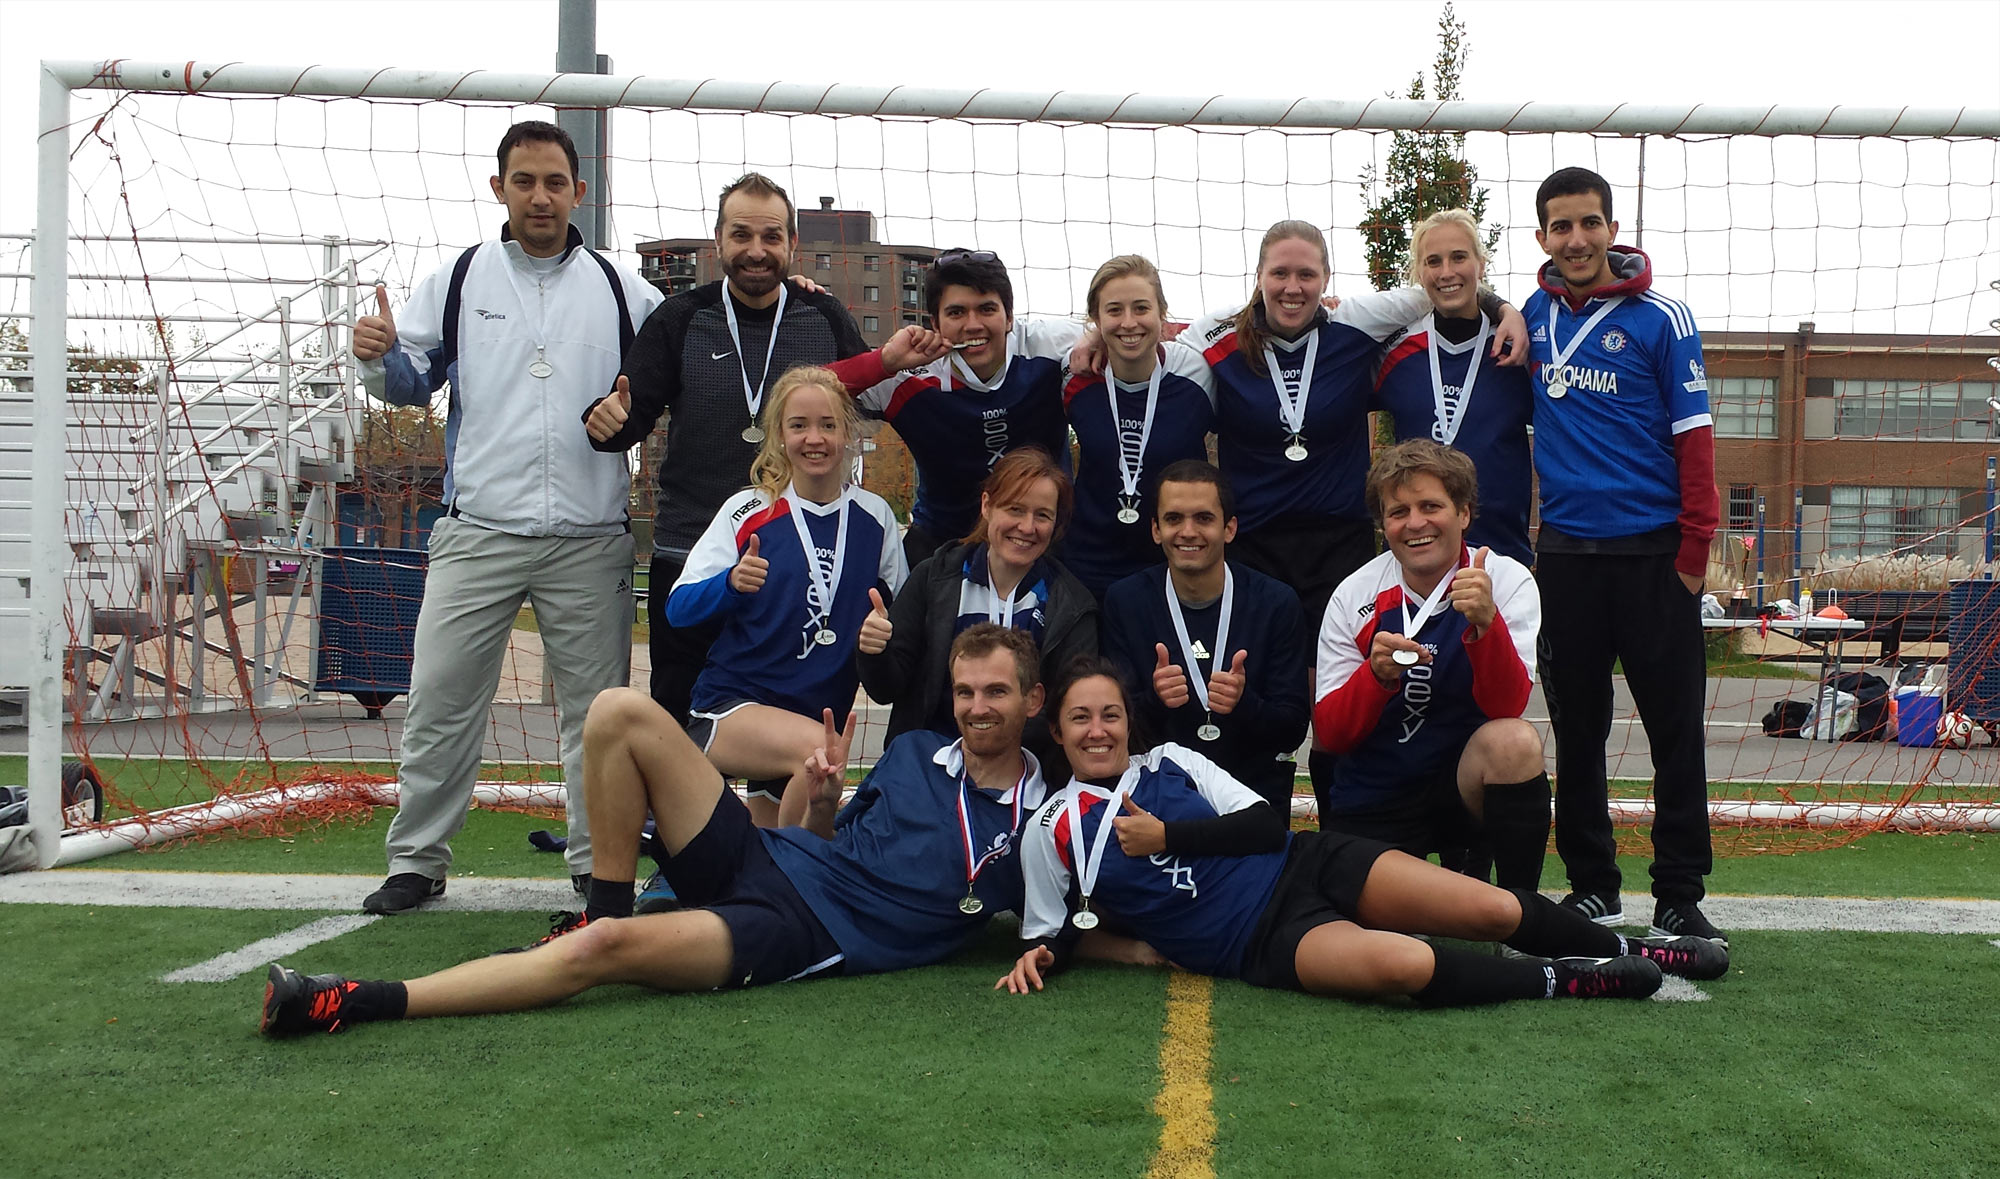 equipe-soccer-montreal